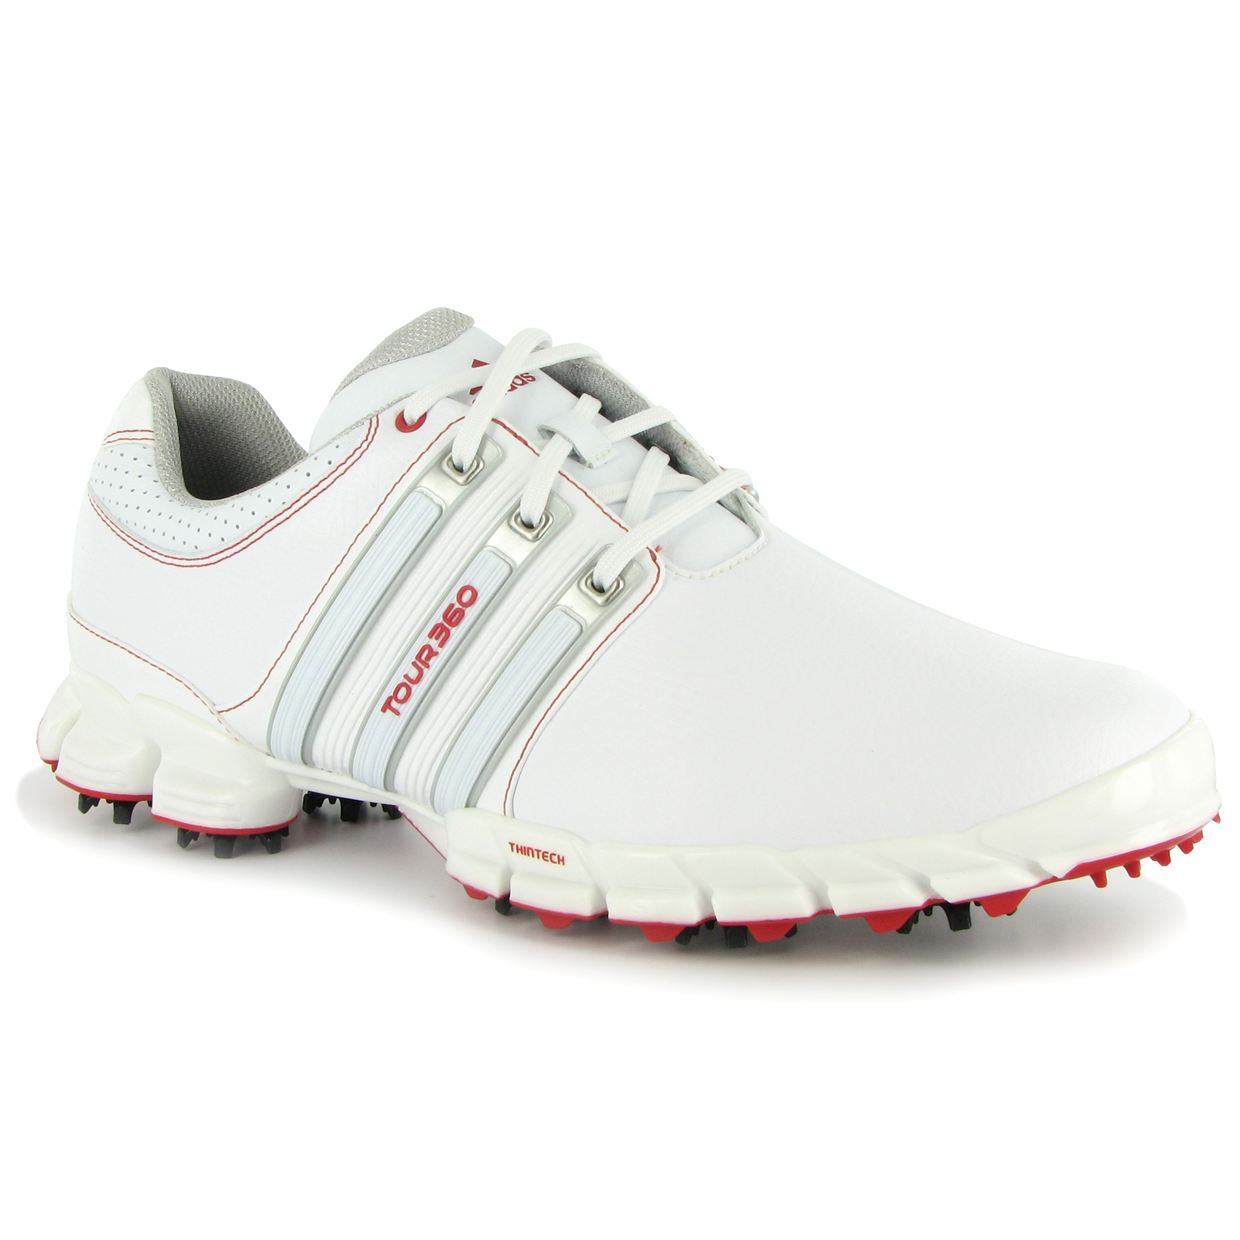 Adidas Golf Tour Atv M Shoes In White Silver